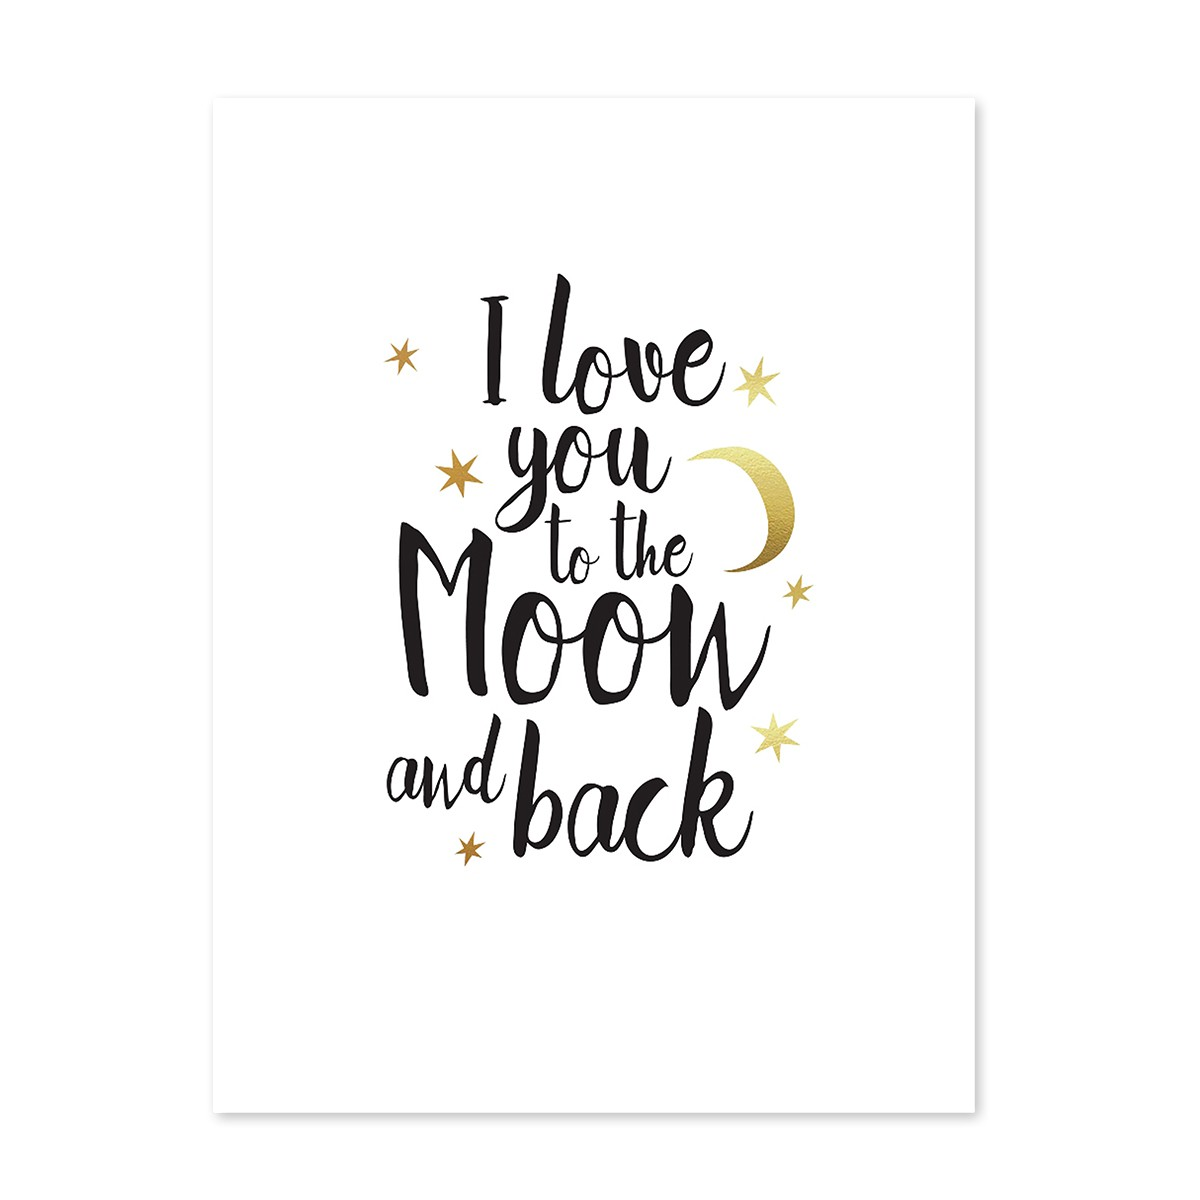 design poster 39 i love you to the moon 39 30x40 cm mit goldaufdruck typographie spruch poster. Black Bedroom Furniture Sets. Home Design Ideas